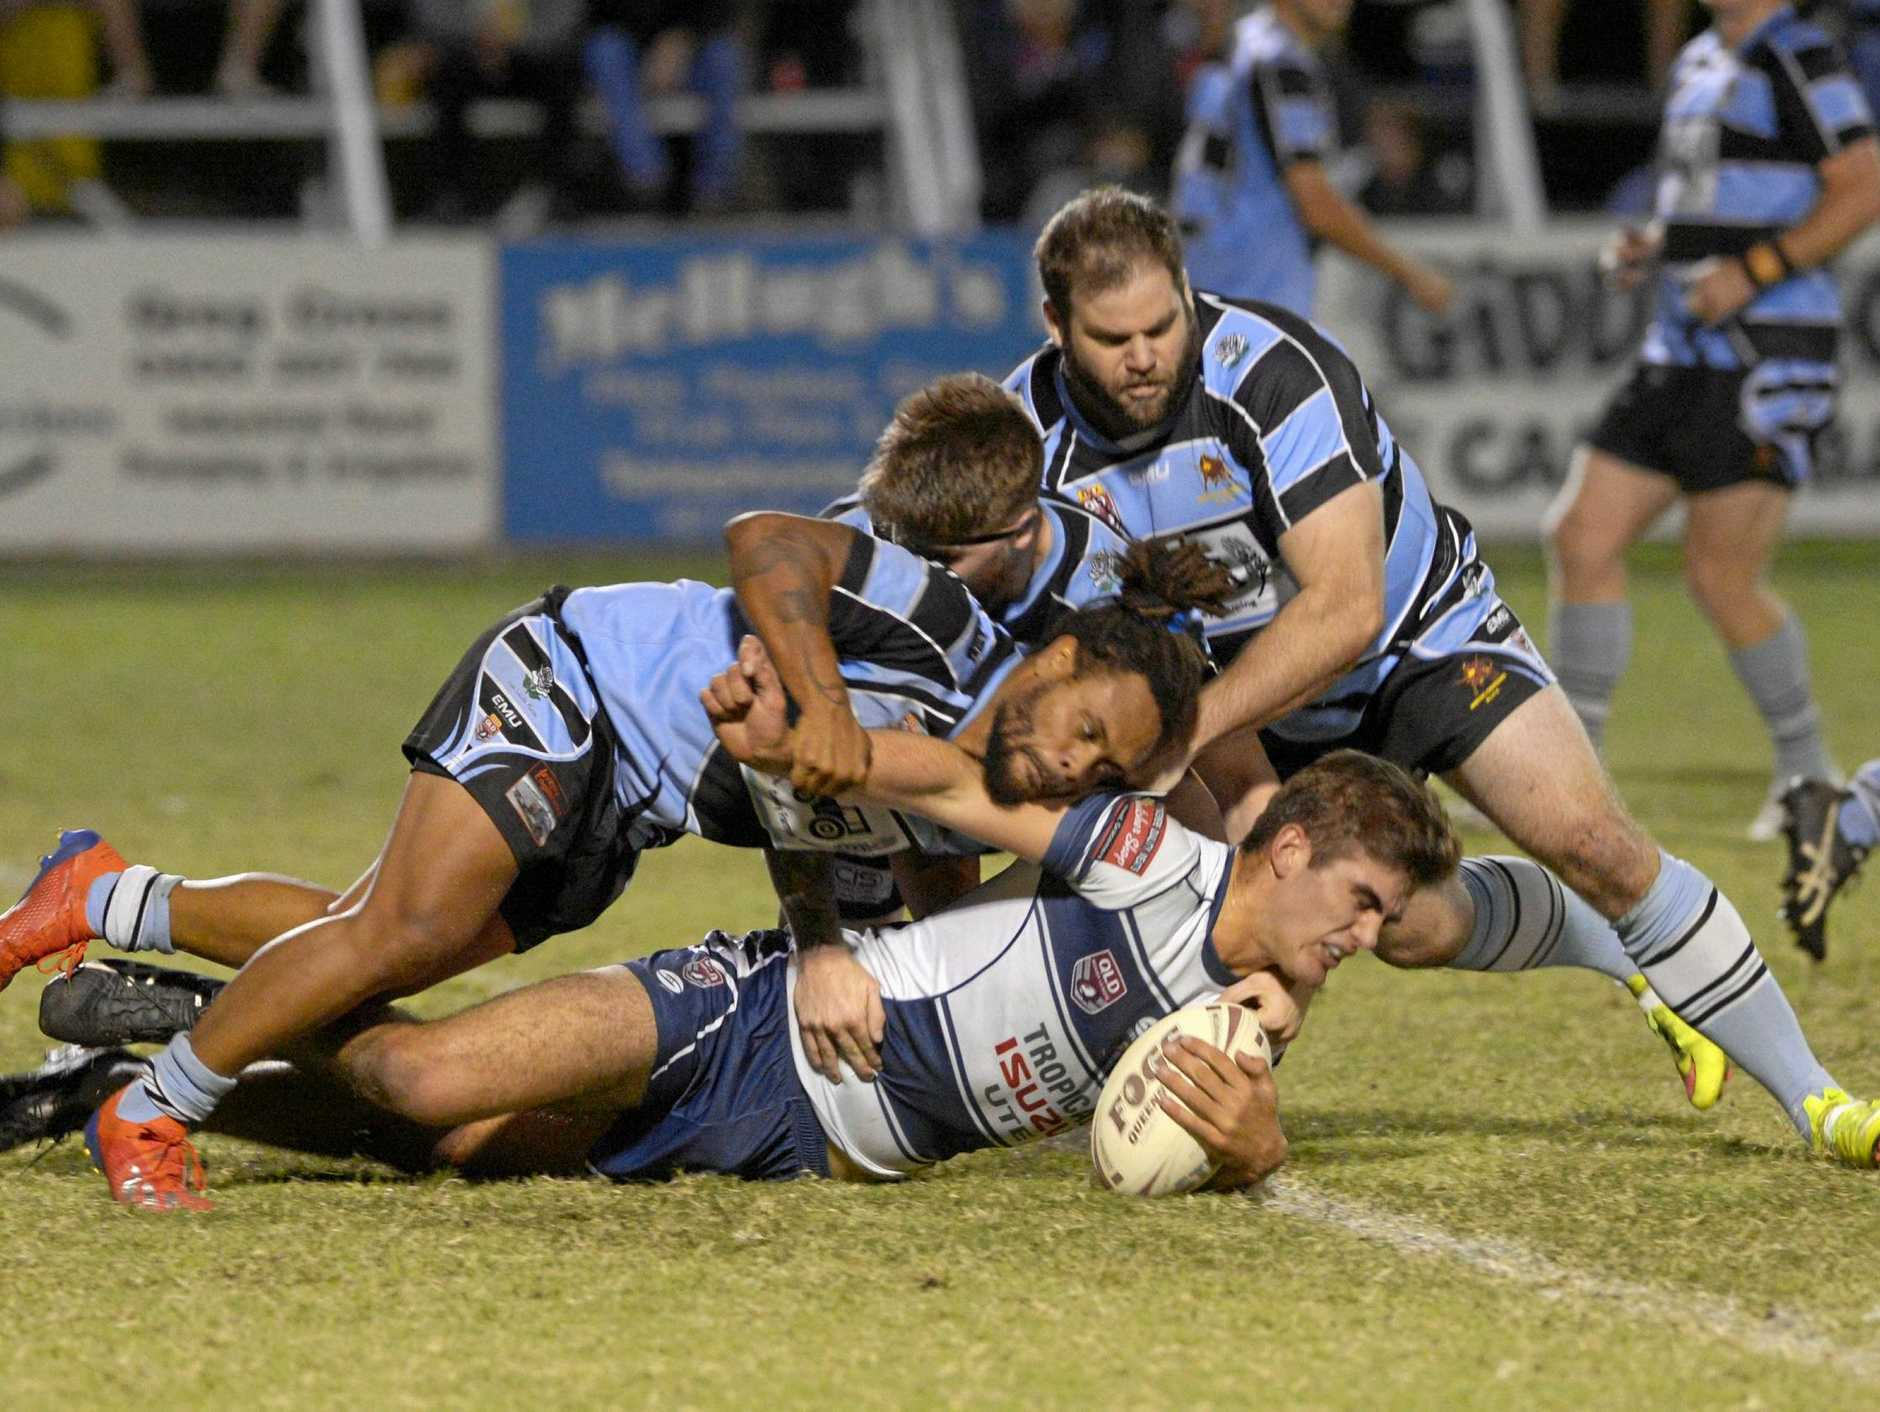 GOOD DEFENCE: Solid Norths defence halts the charge of Rockhampton Brothers' player Roarke Christensen in the A-grade rugby league clash at Victoria Park on Saturday night.